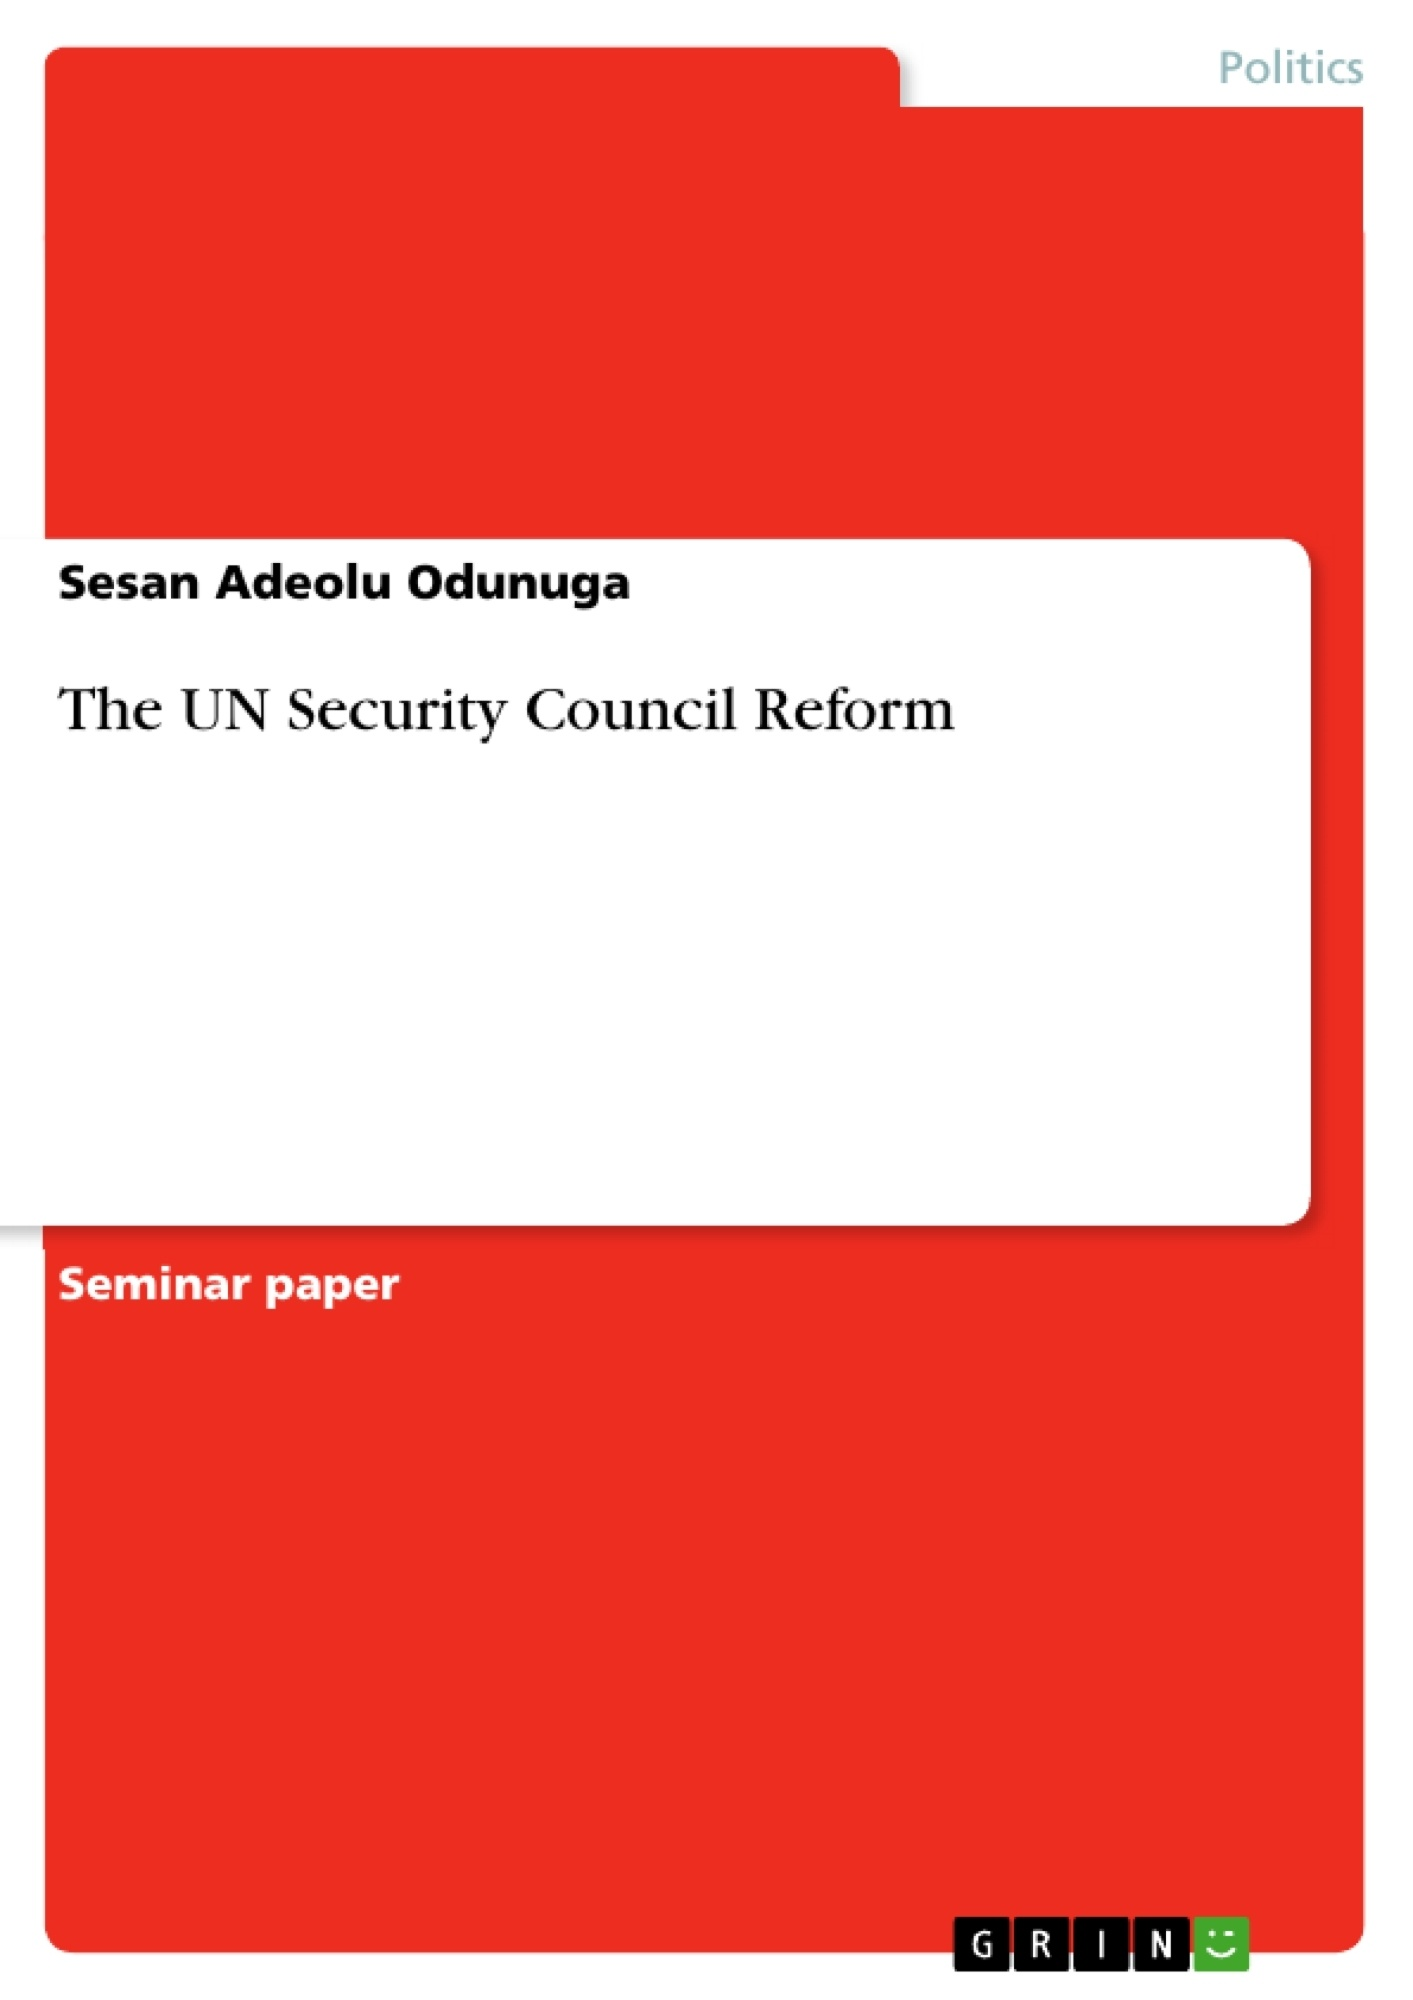 Title: The UN Security Council Reform